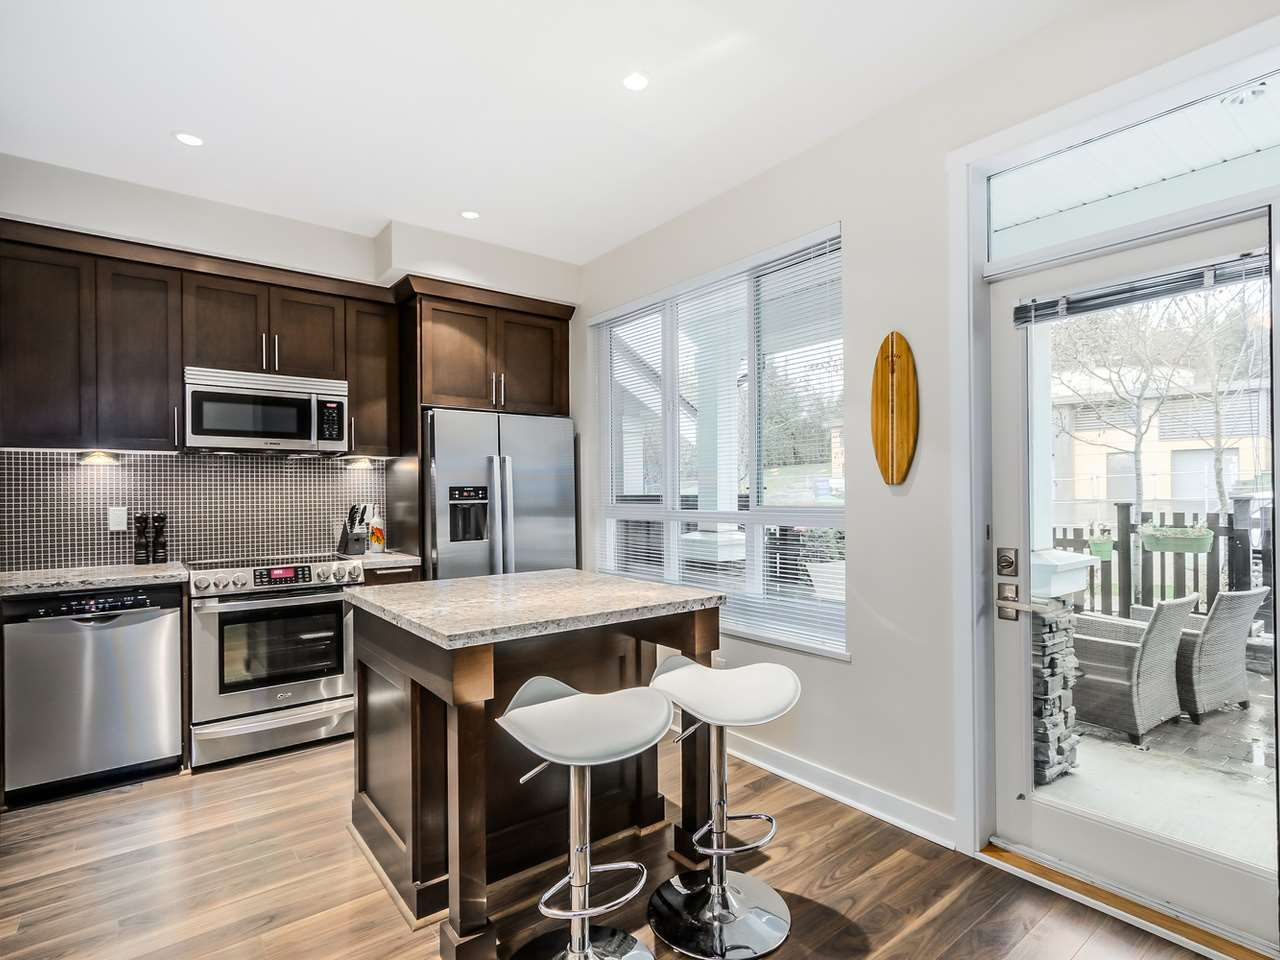 """Photo 8: Photos: 102 1480 SOUTHVIEW Street in Coquitlam: Burke Mountain Townhouse for sale in """"CEDAR CREEK NORTH"""" : MLS®# R2016018"""